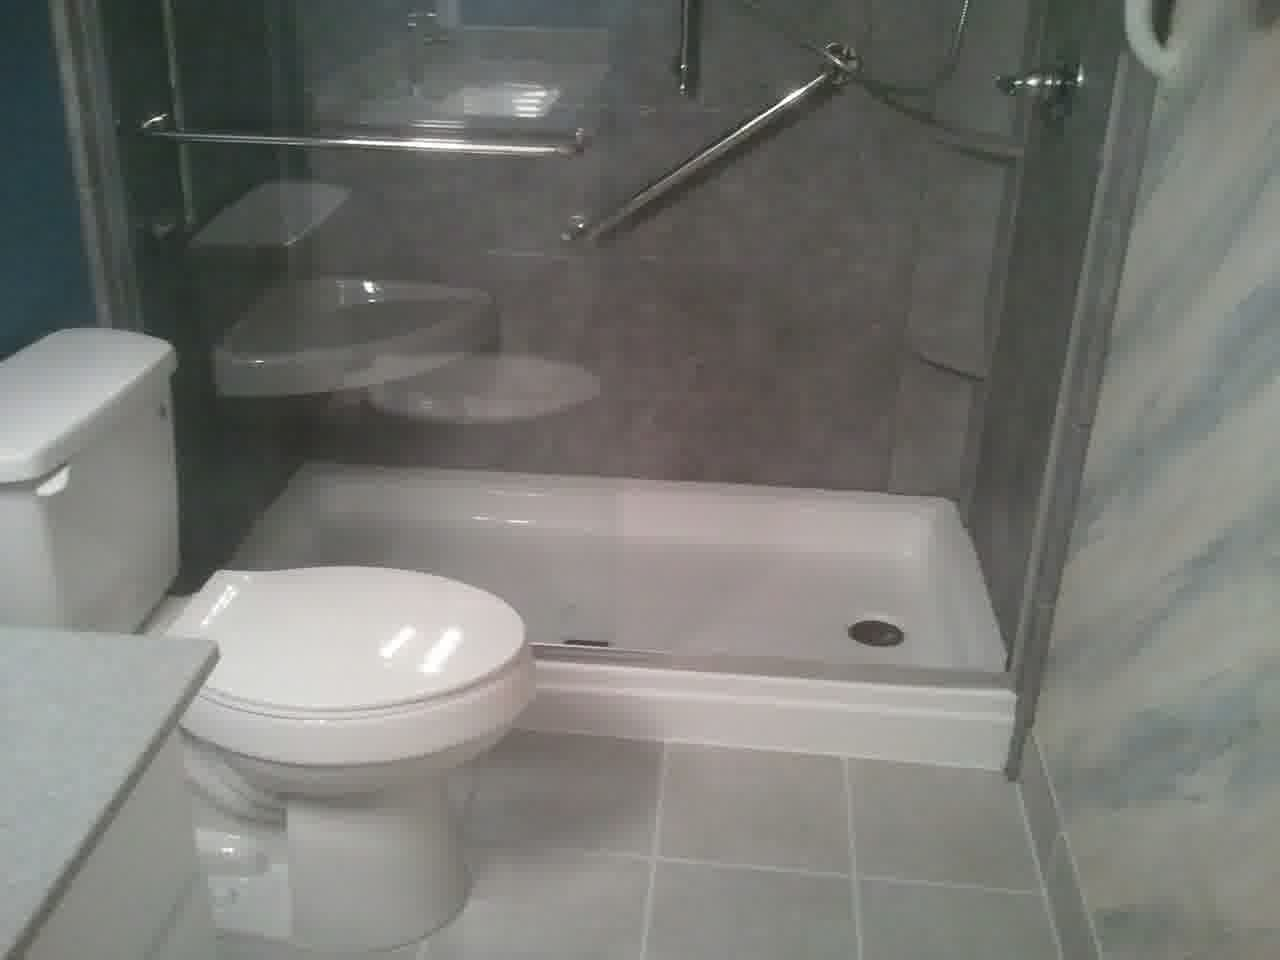 Very Small Bathroom Ideas With Shower Only Google Search Home - Very small bathroom ideas with shower only